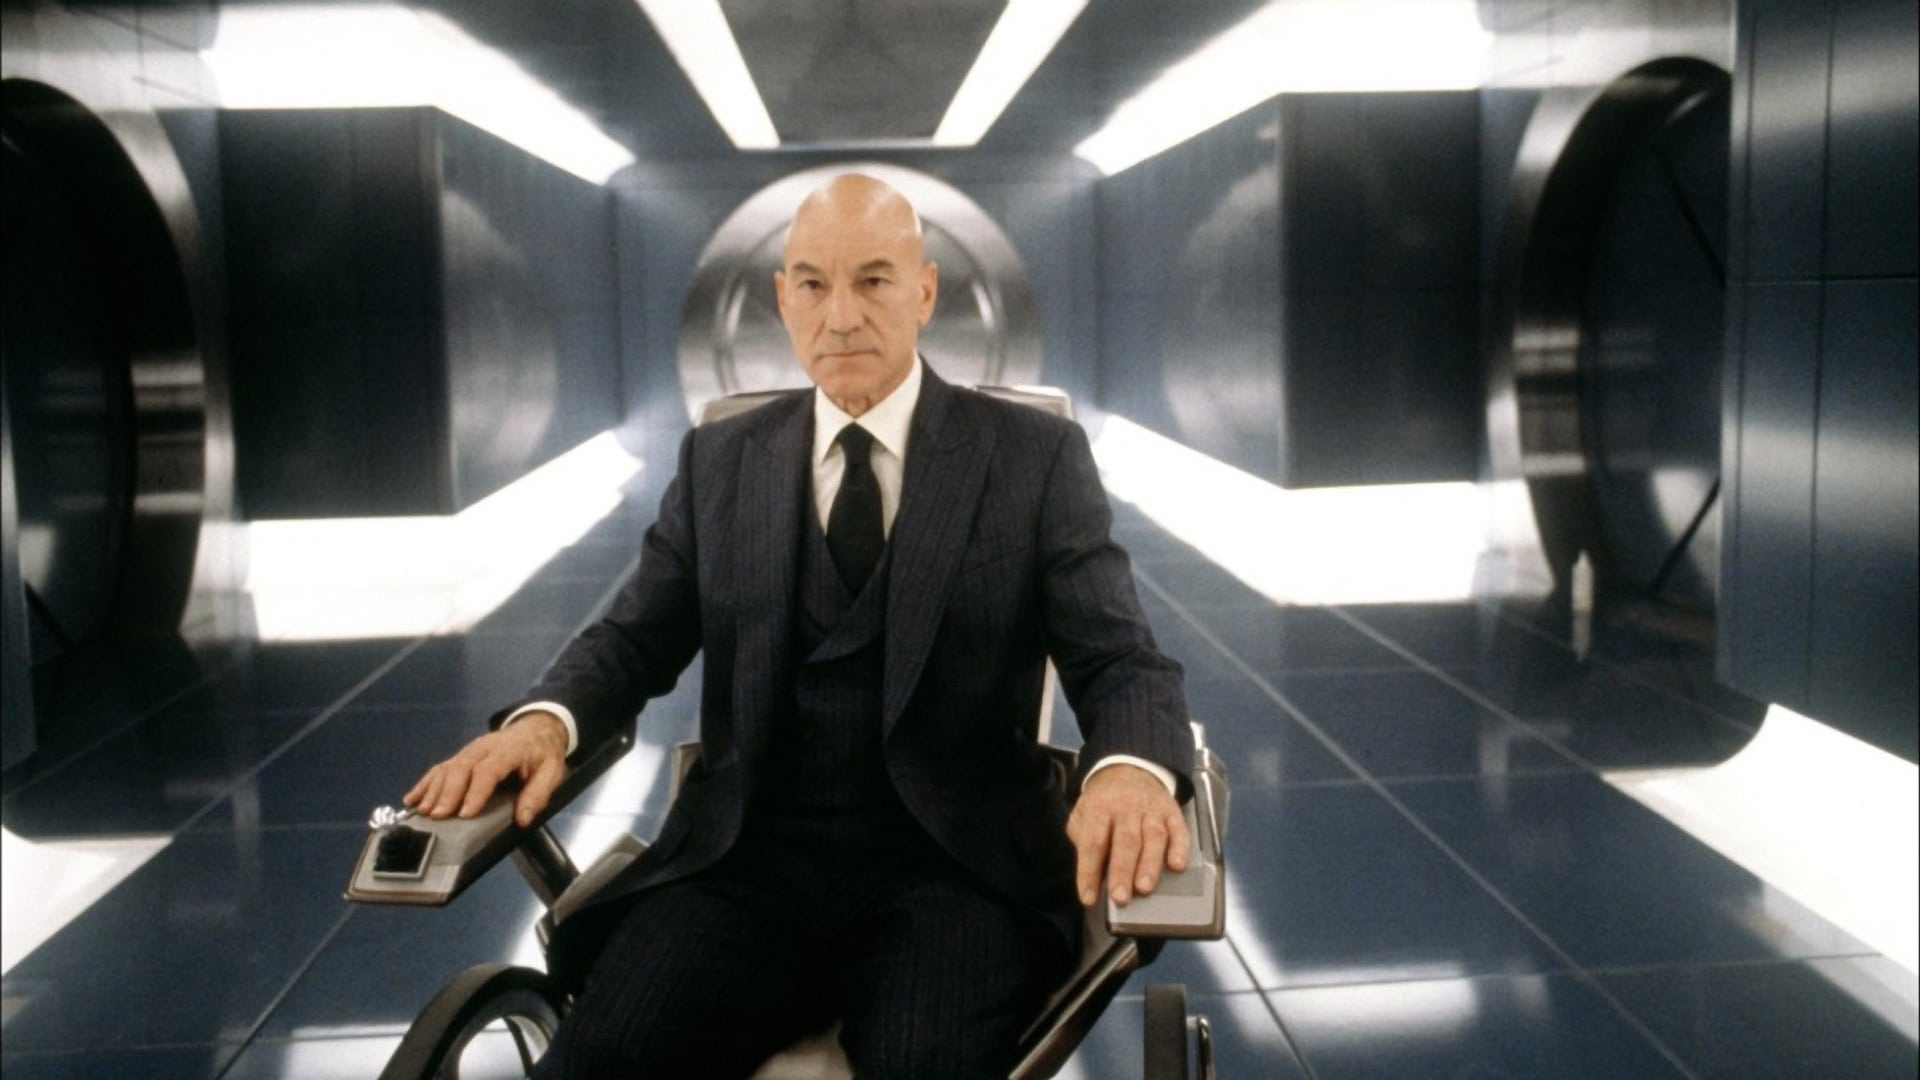 Marvel's Kevin Feige Met With Patrick Stewart About Reprising Professor X